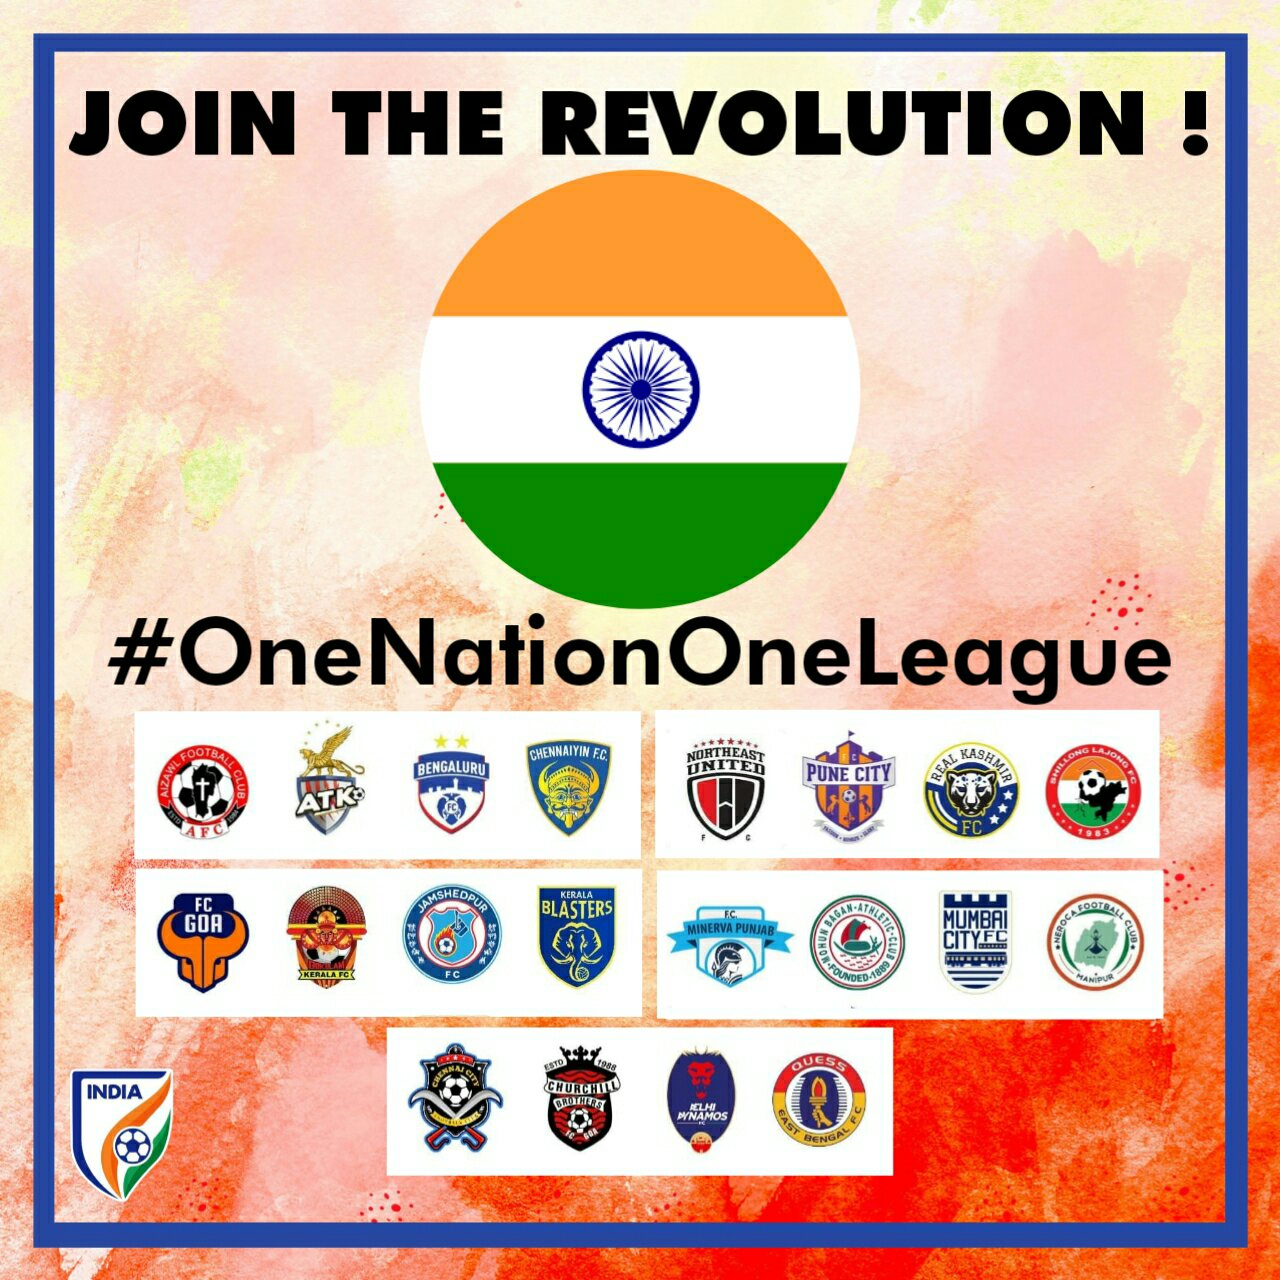 It's time for I League and ISL fans to unite!! img 20190221 wa0027 1736902482